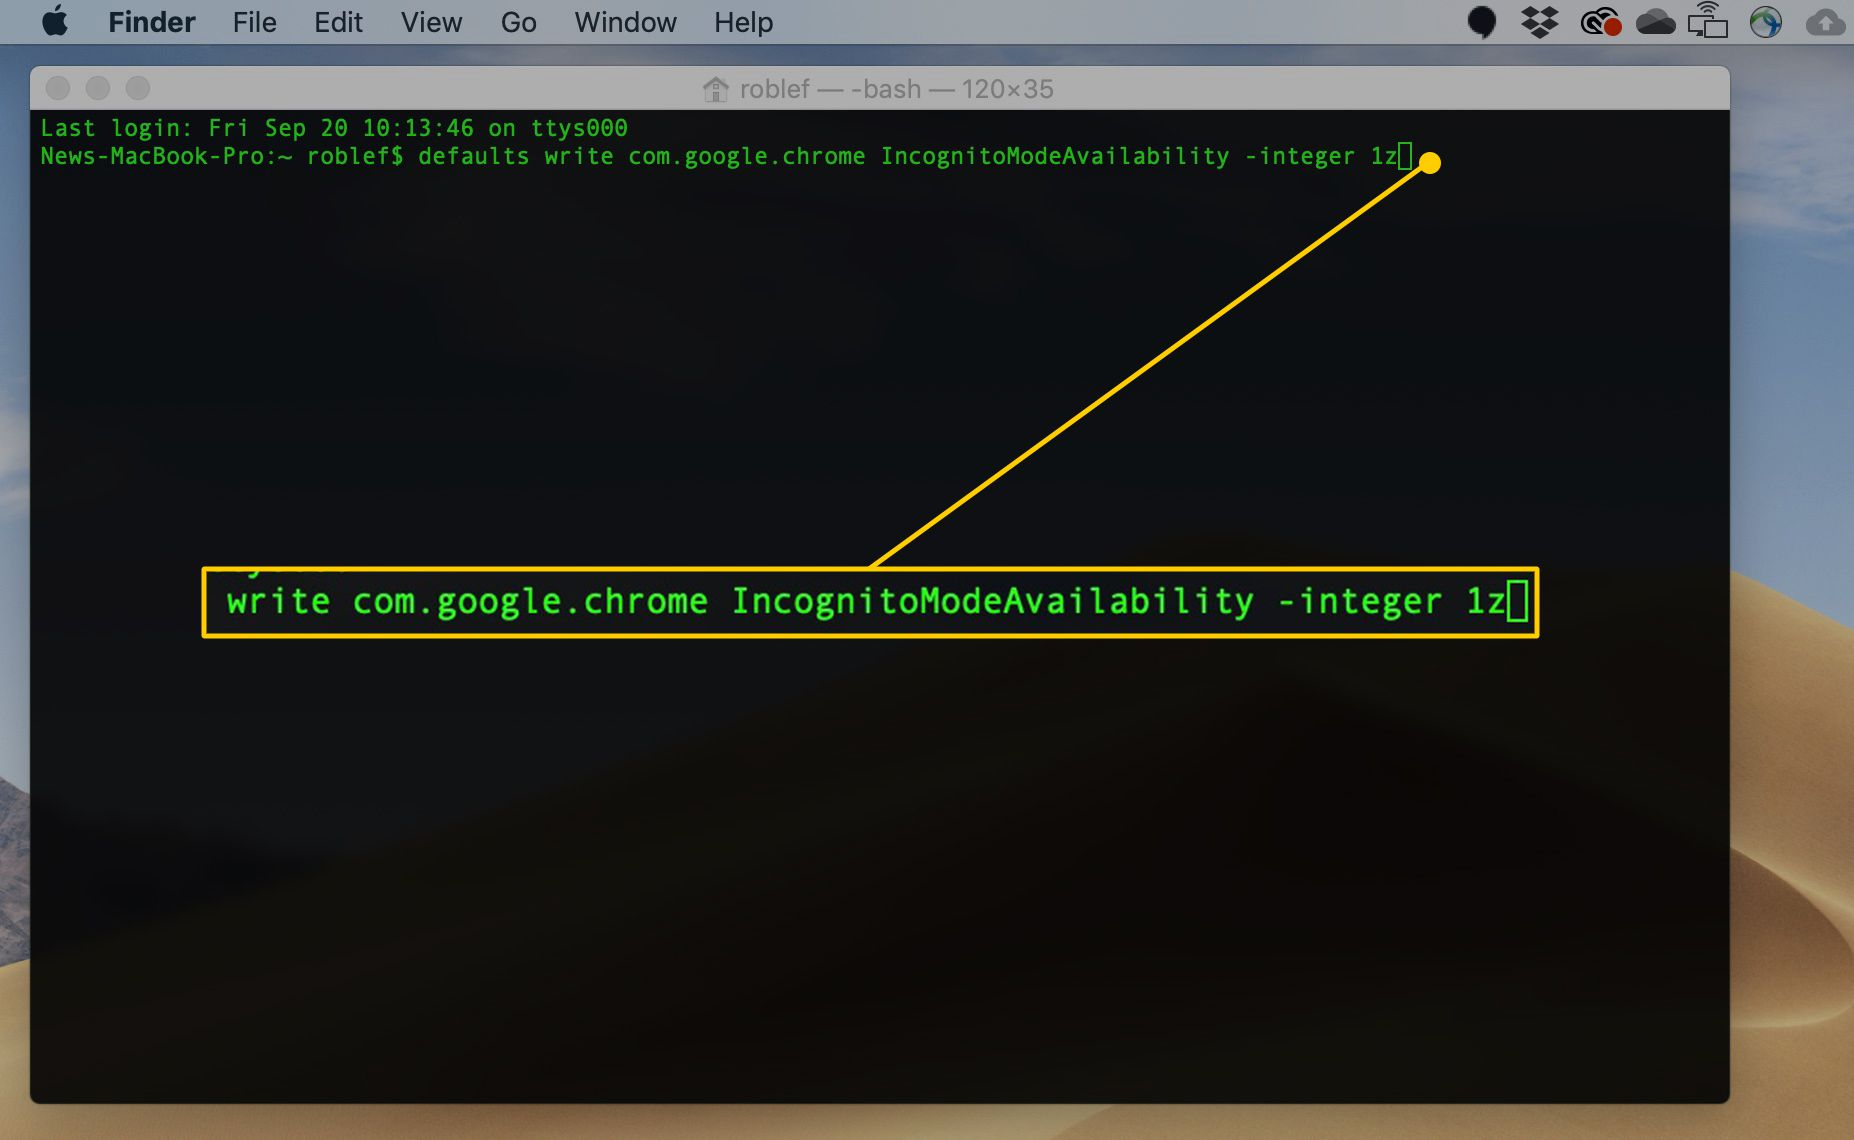 macOS Terminal command to disable Incognito Mode